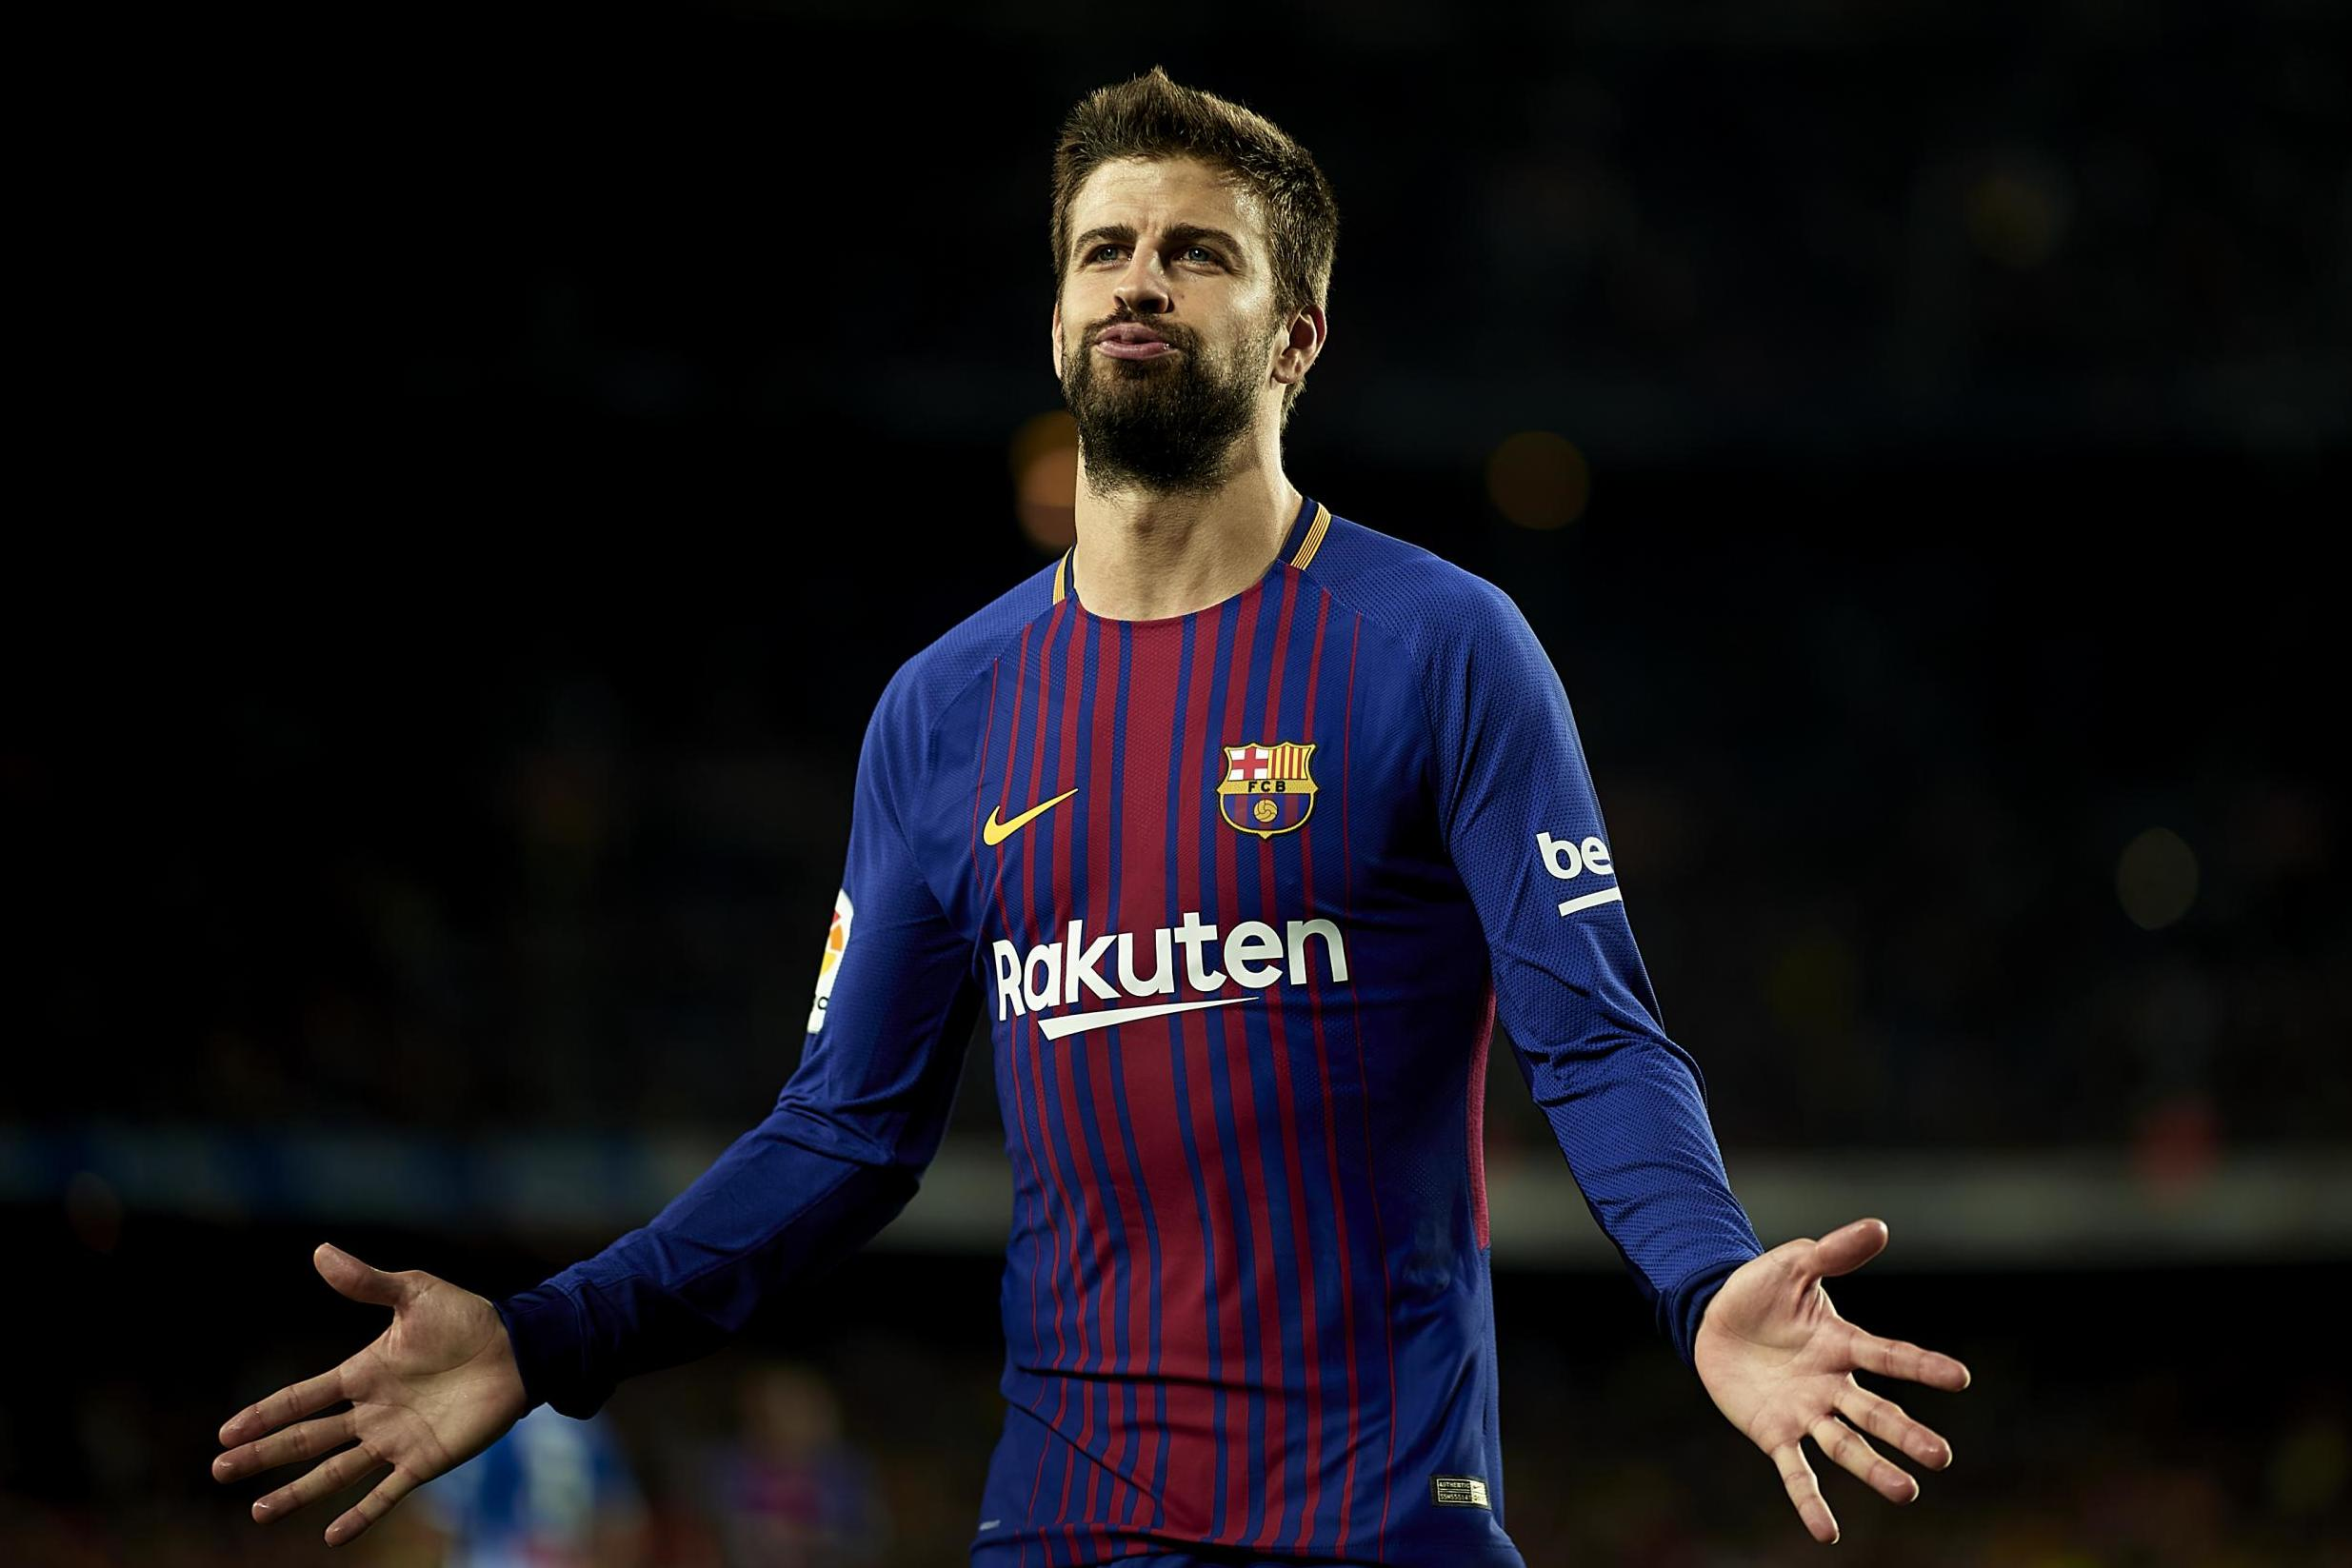 Hd Animated Wallpapers For Mobile Free Download Gerard Pique Wallpaper